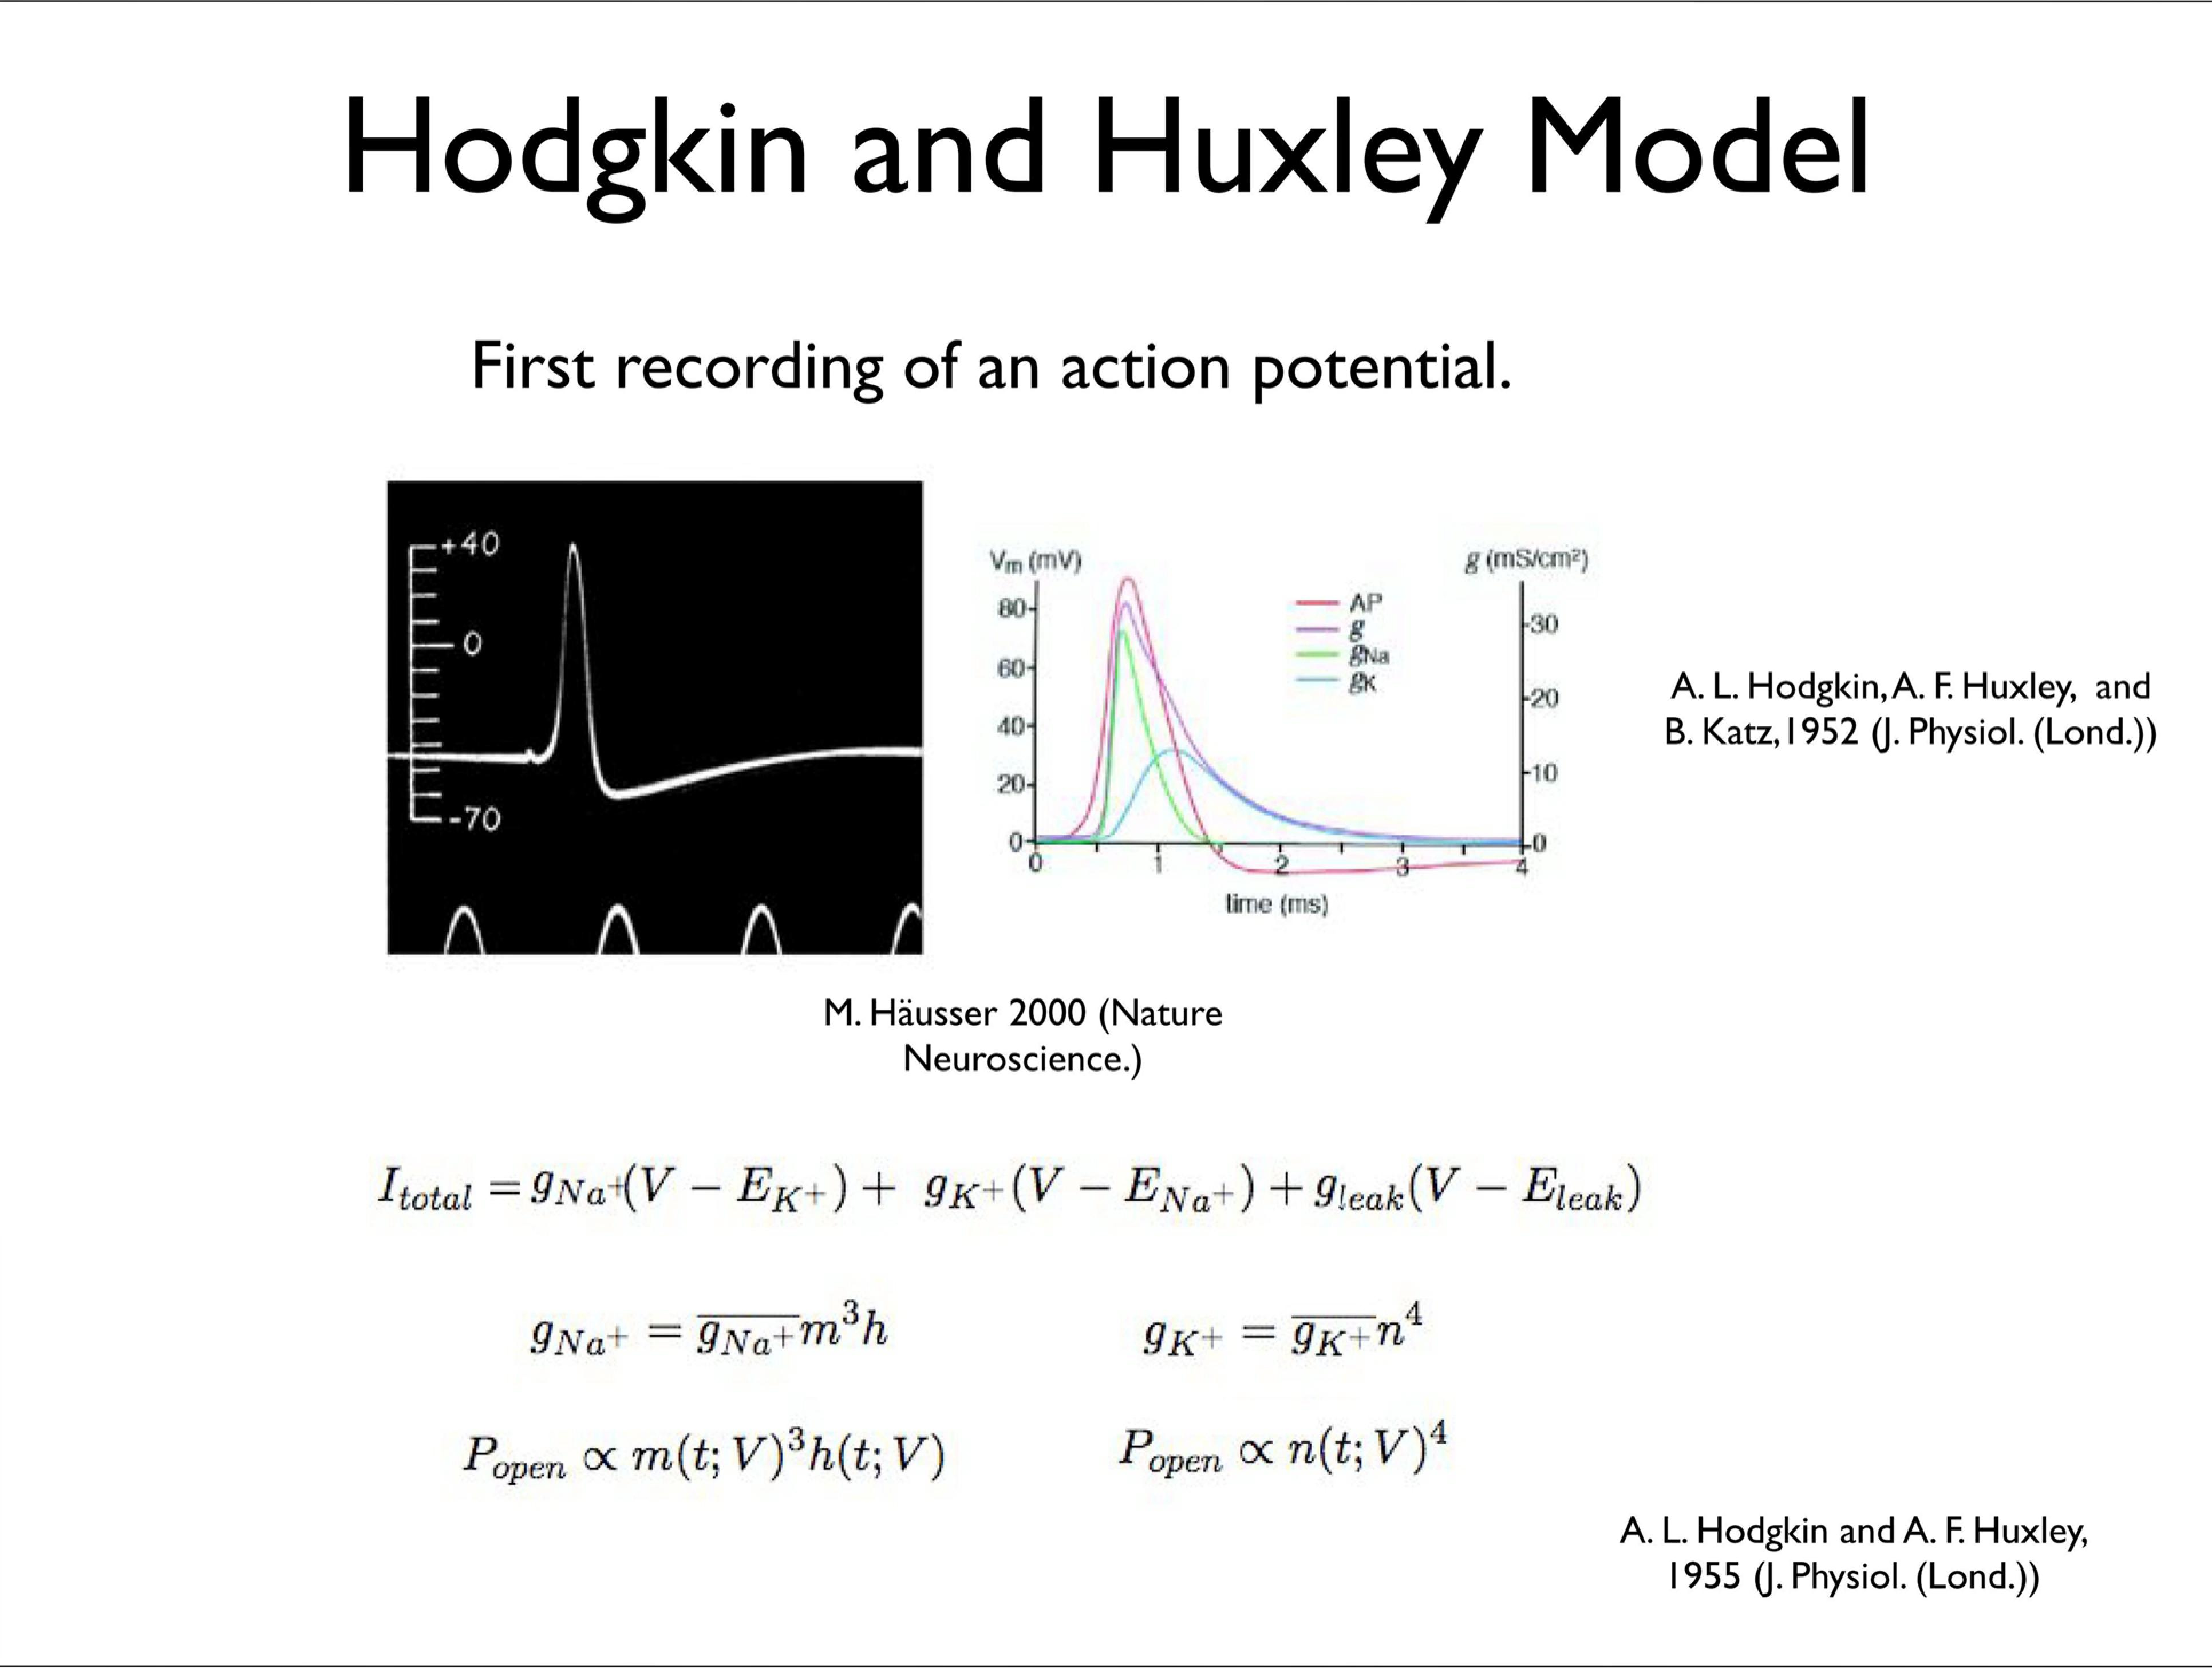 Slide 2: Hodgkin and Huxley Model